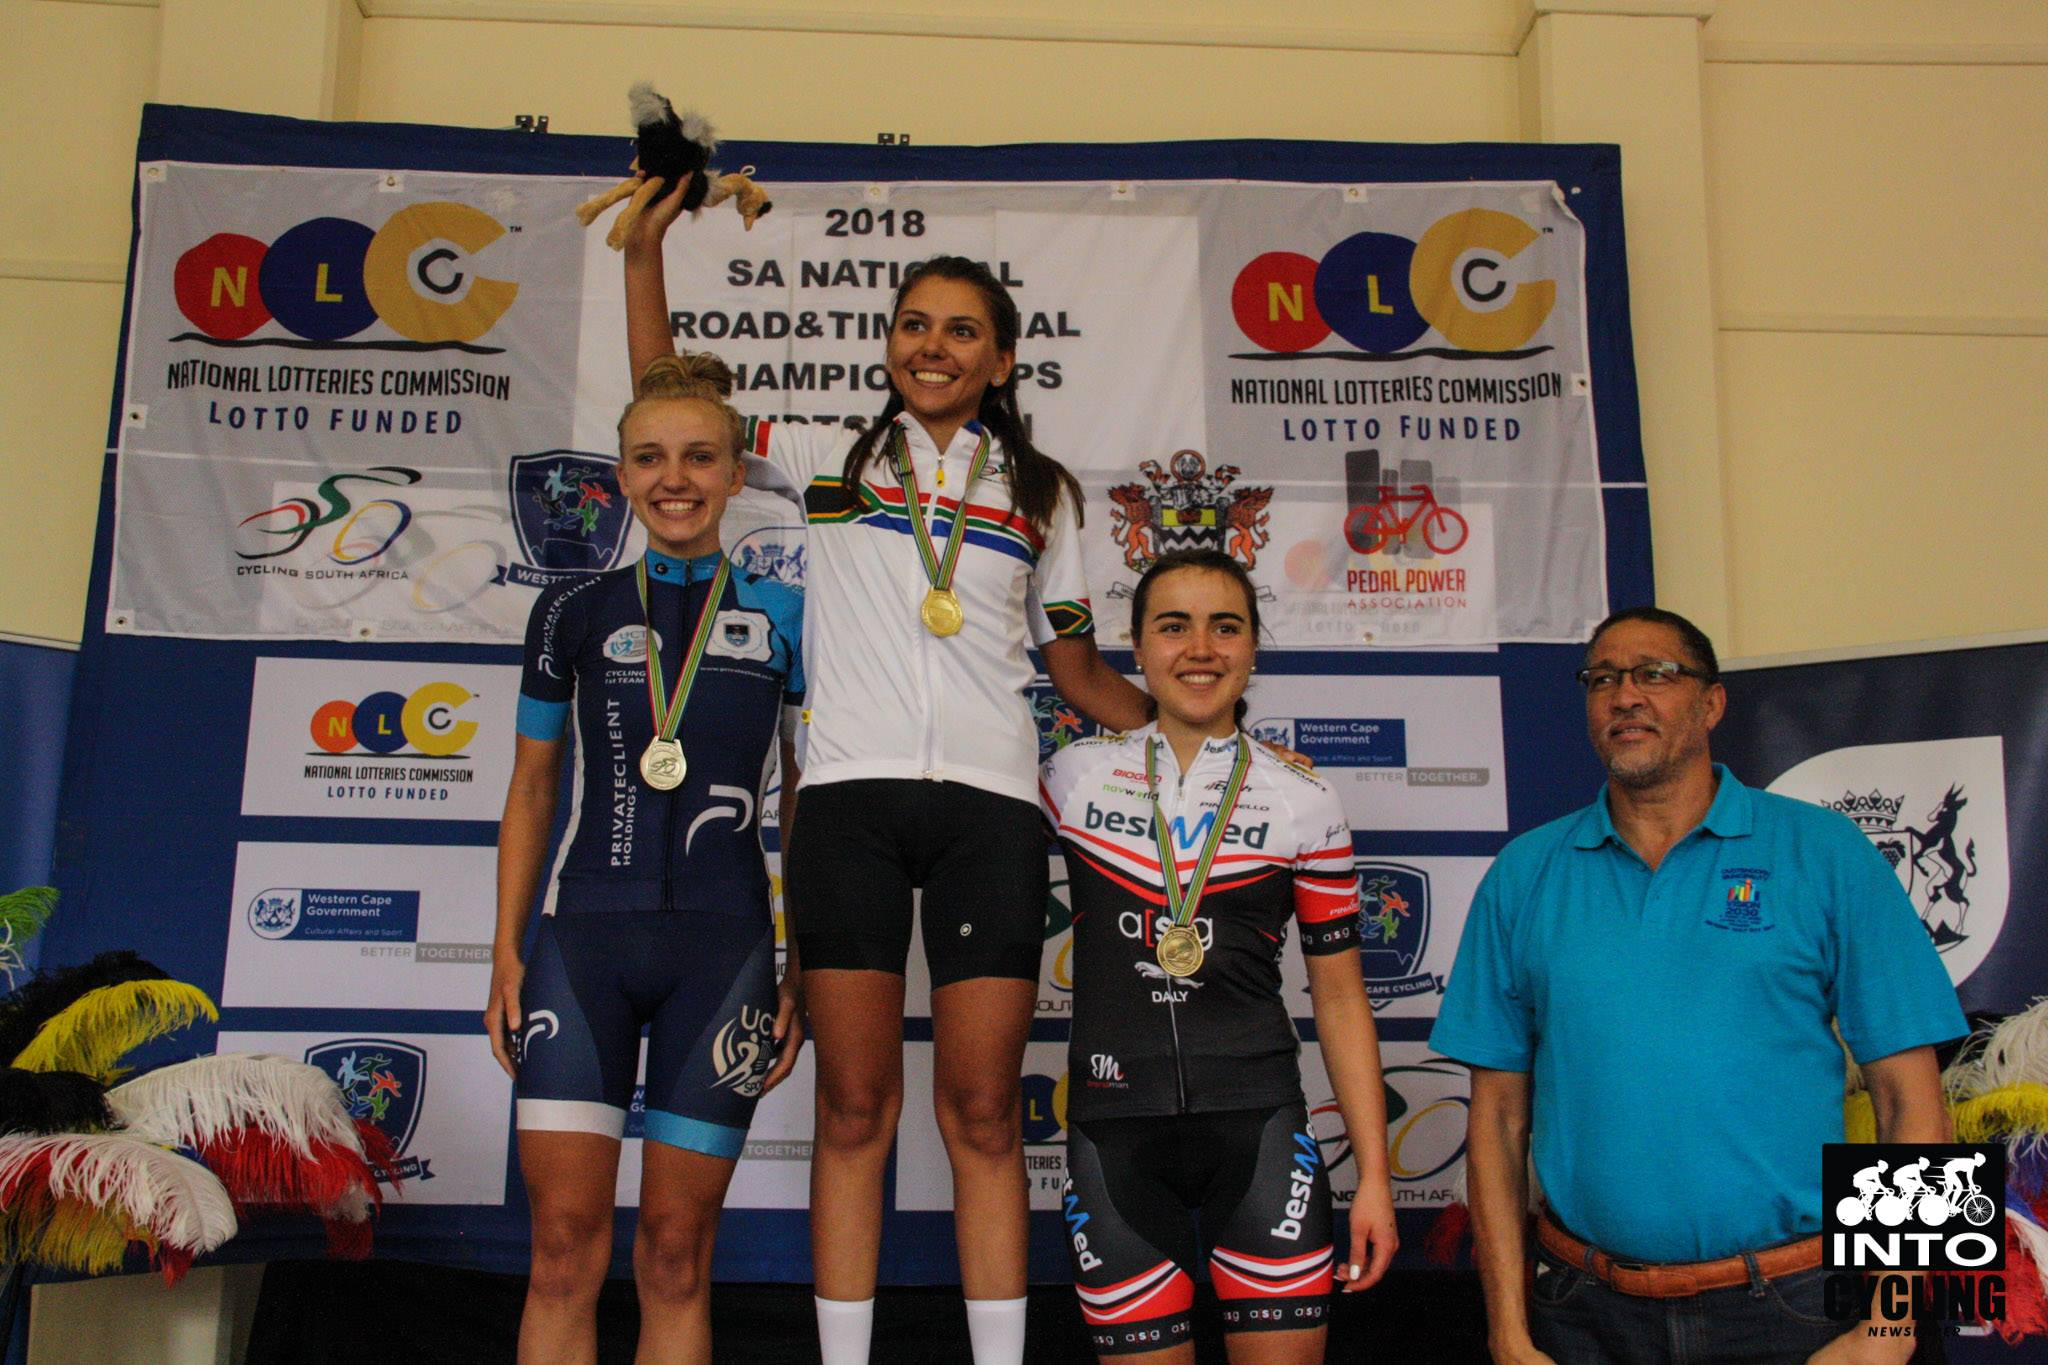 Catherine Colyn   (Maaslandster International Women's Cycling Team) celebrates her victory in the U23 Women's Road Race flanked by Courteney Webb (UCT Cycling Team-left) and Danielle Strydom (Team Bestmed-right) on the U23 Women's podium at the 2018 SA National Road and Para-cycling Championships, which took place in the streets of Oudtshoorn from 6-11 February. 📷 www.intocycling.co.za